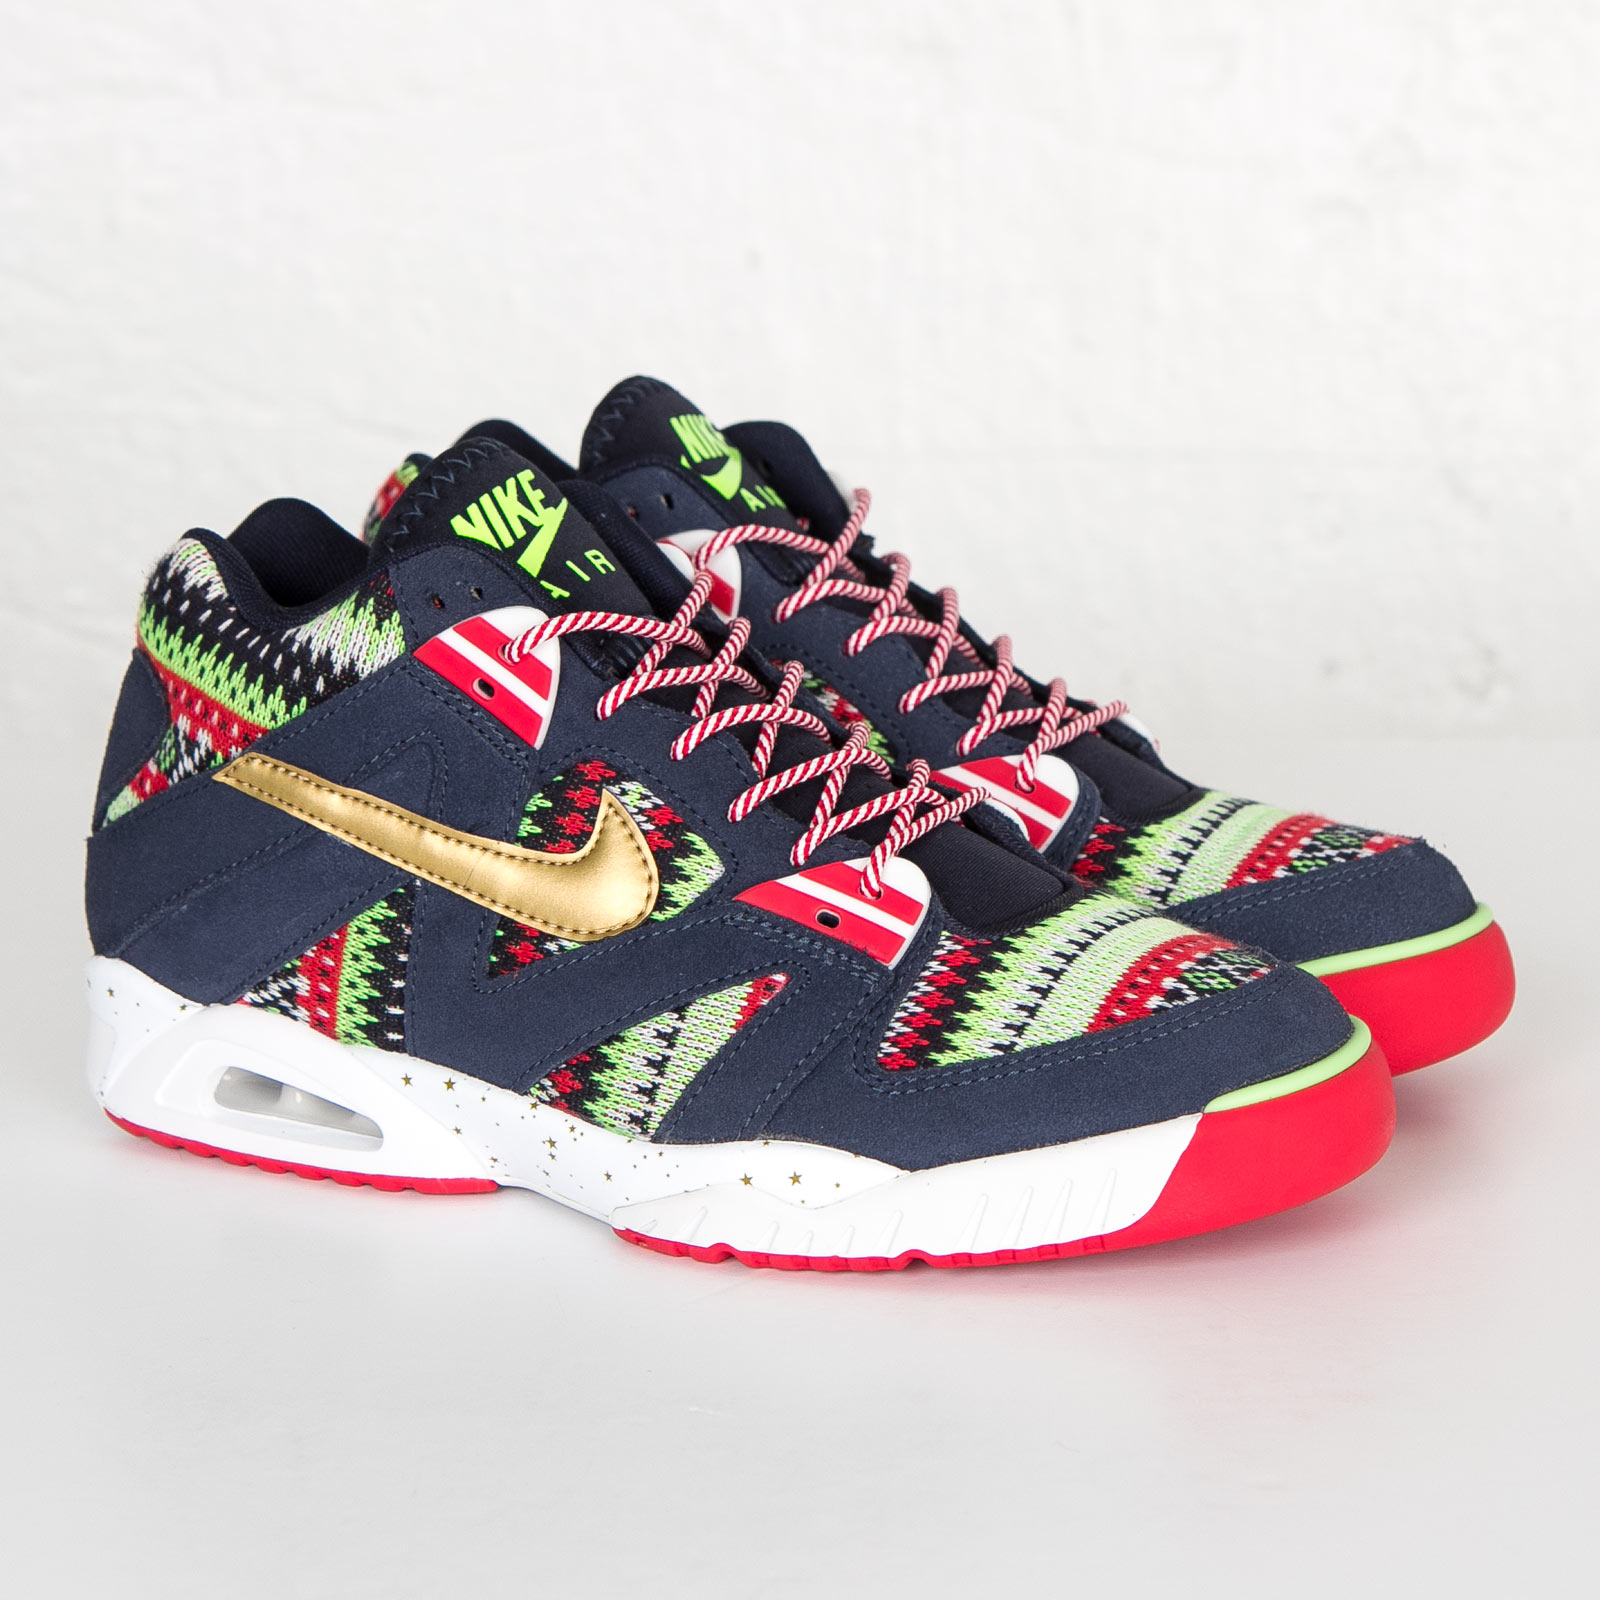 34af86e8f539 Nike Air Tech Challenge III QS - 827822-400 - Sneakersnstuff ...